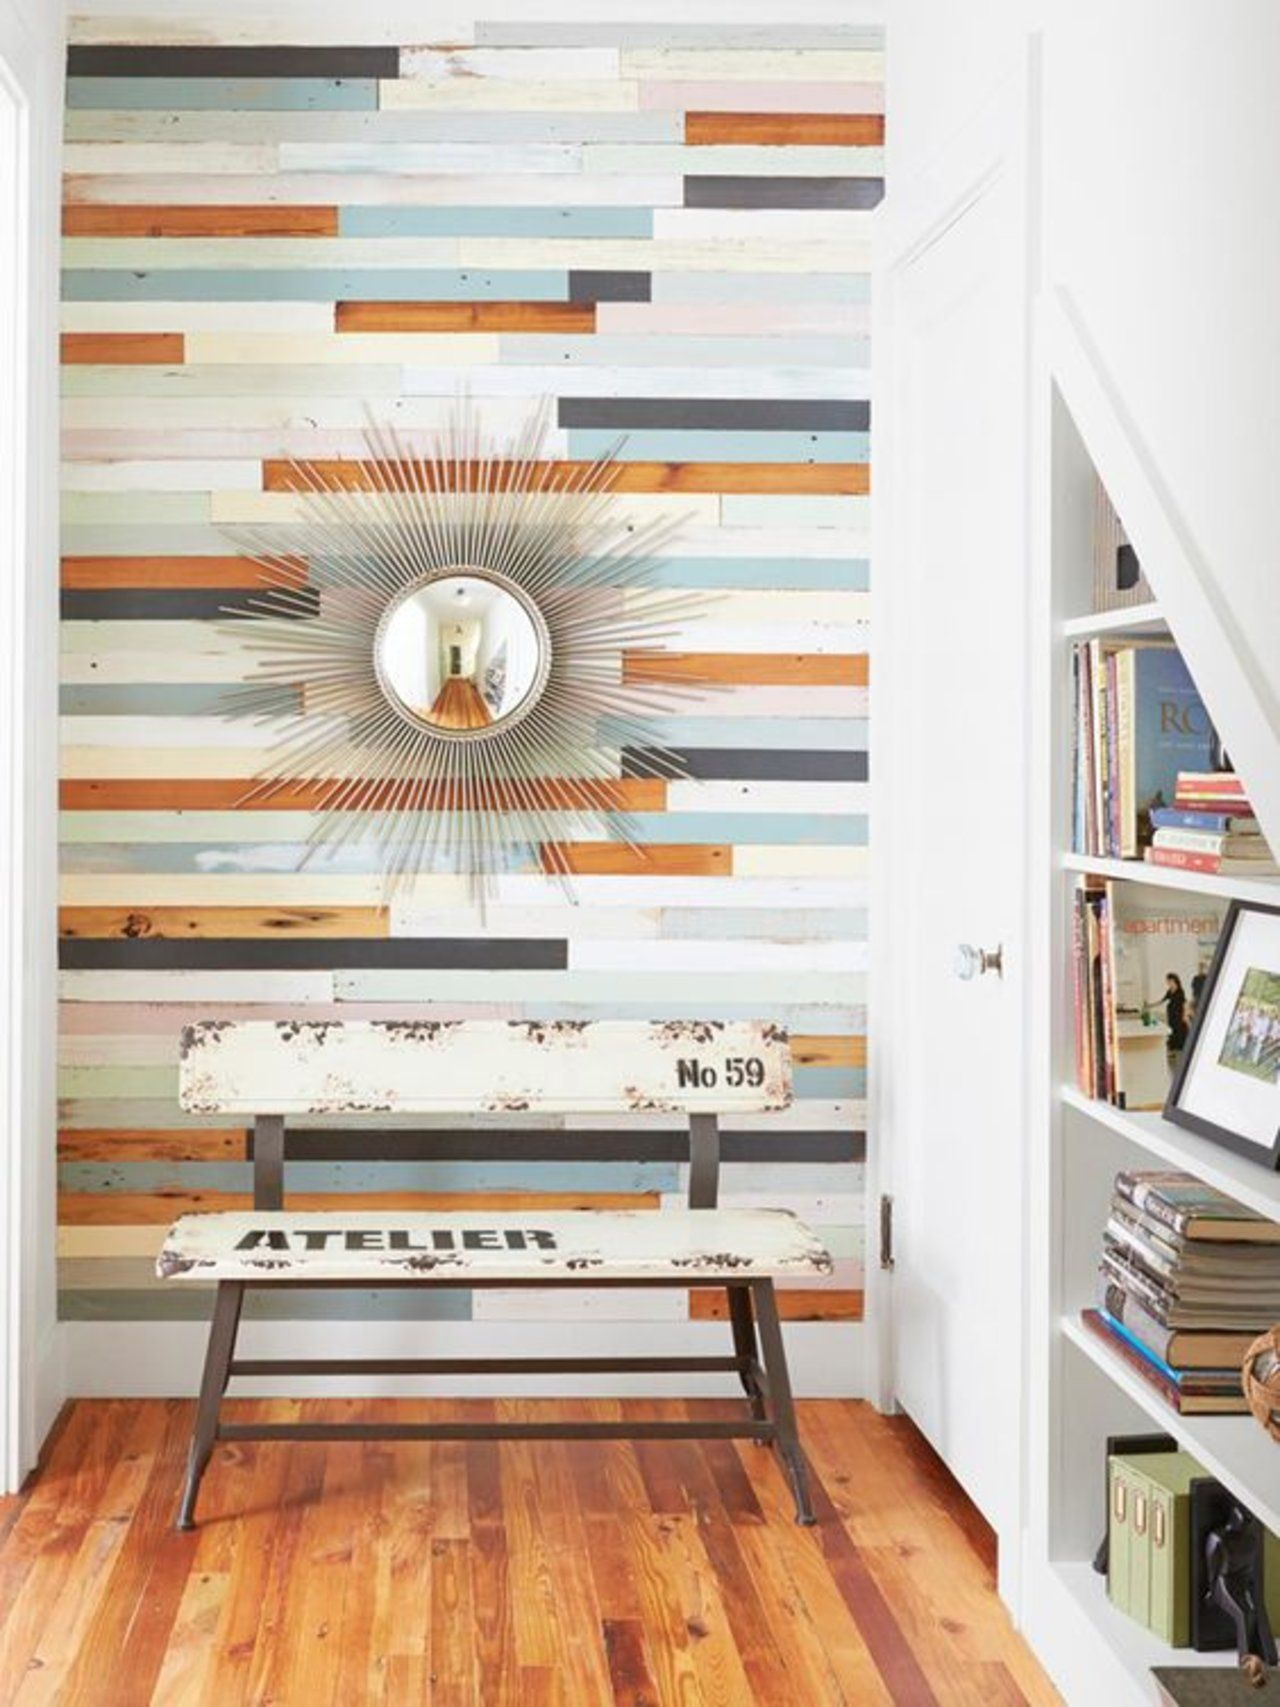 Using Accent Walls in Your Mobile Home | Pinterest | Wall ideas ...